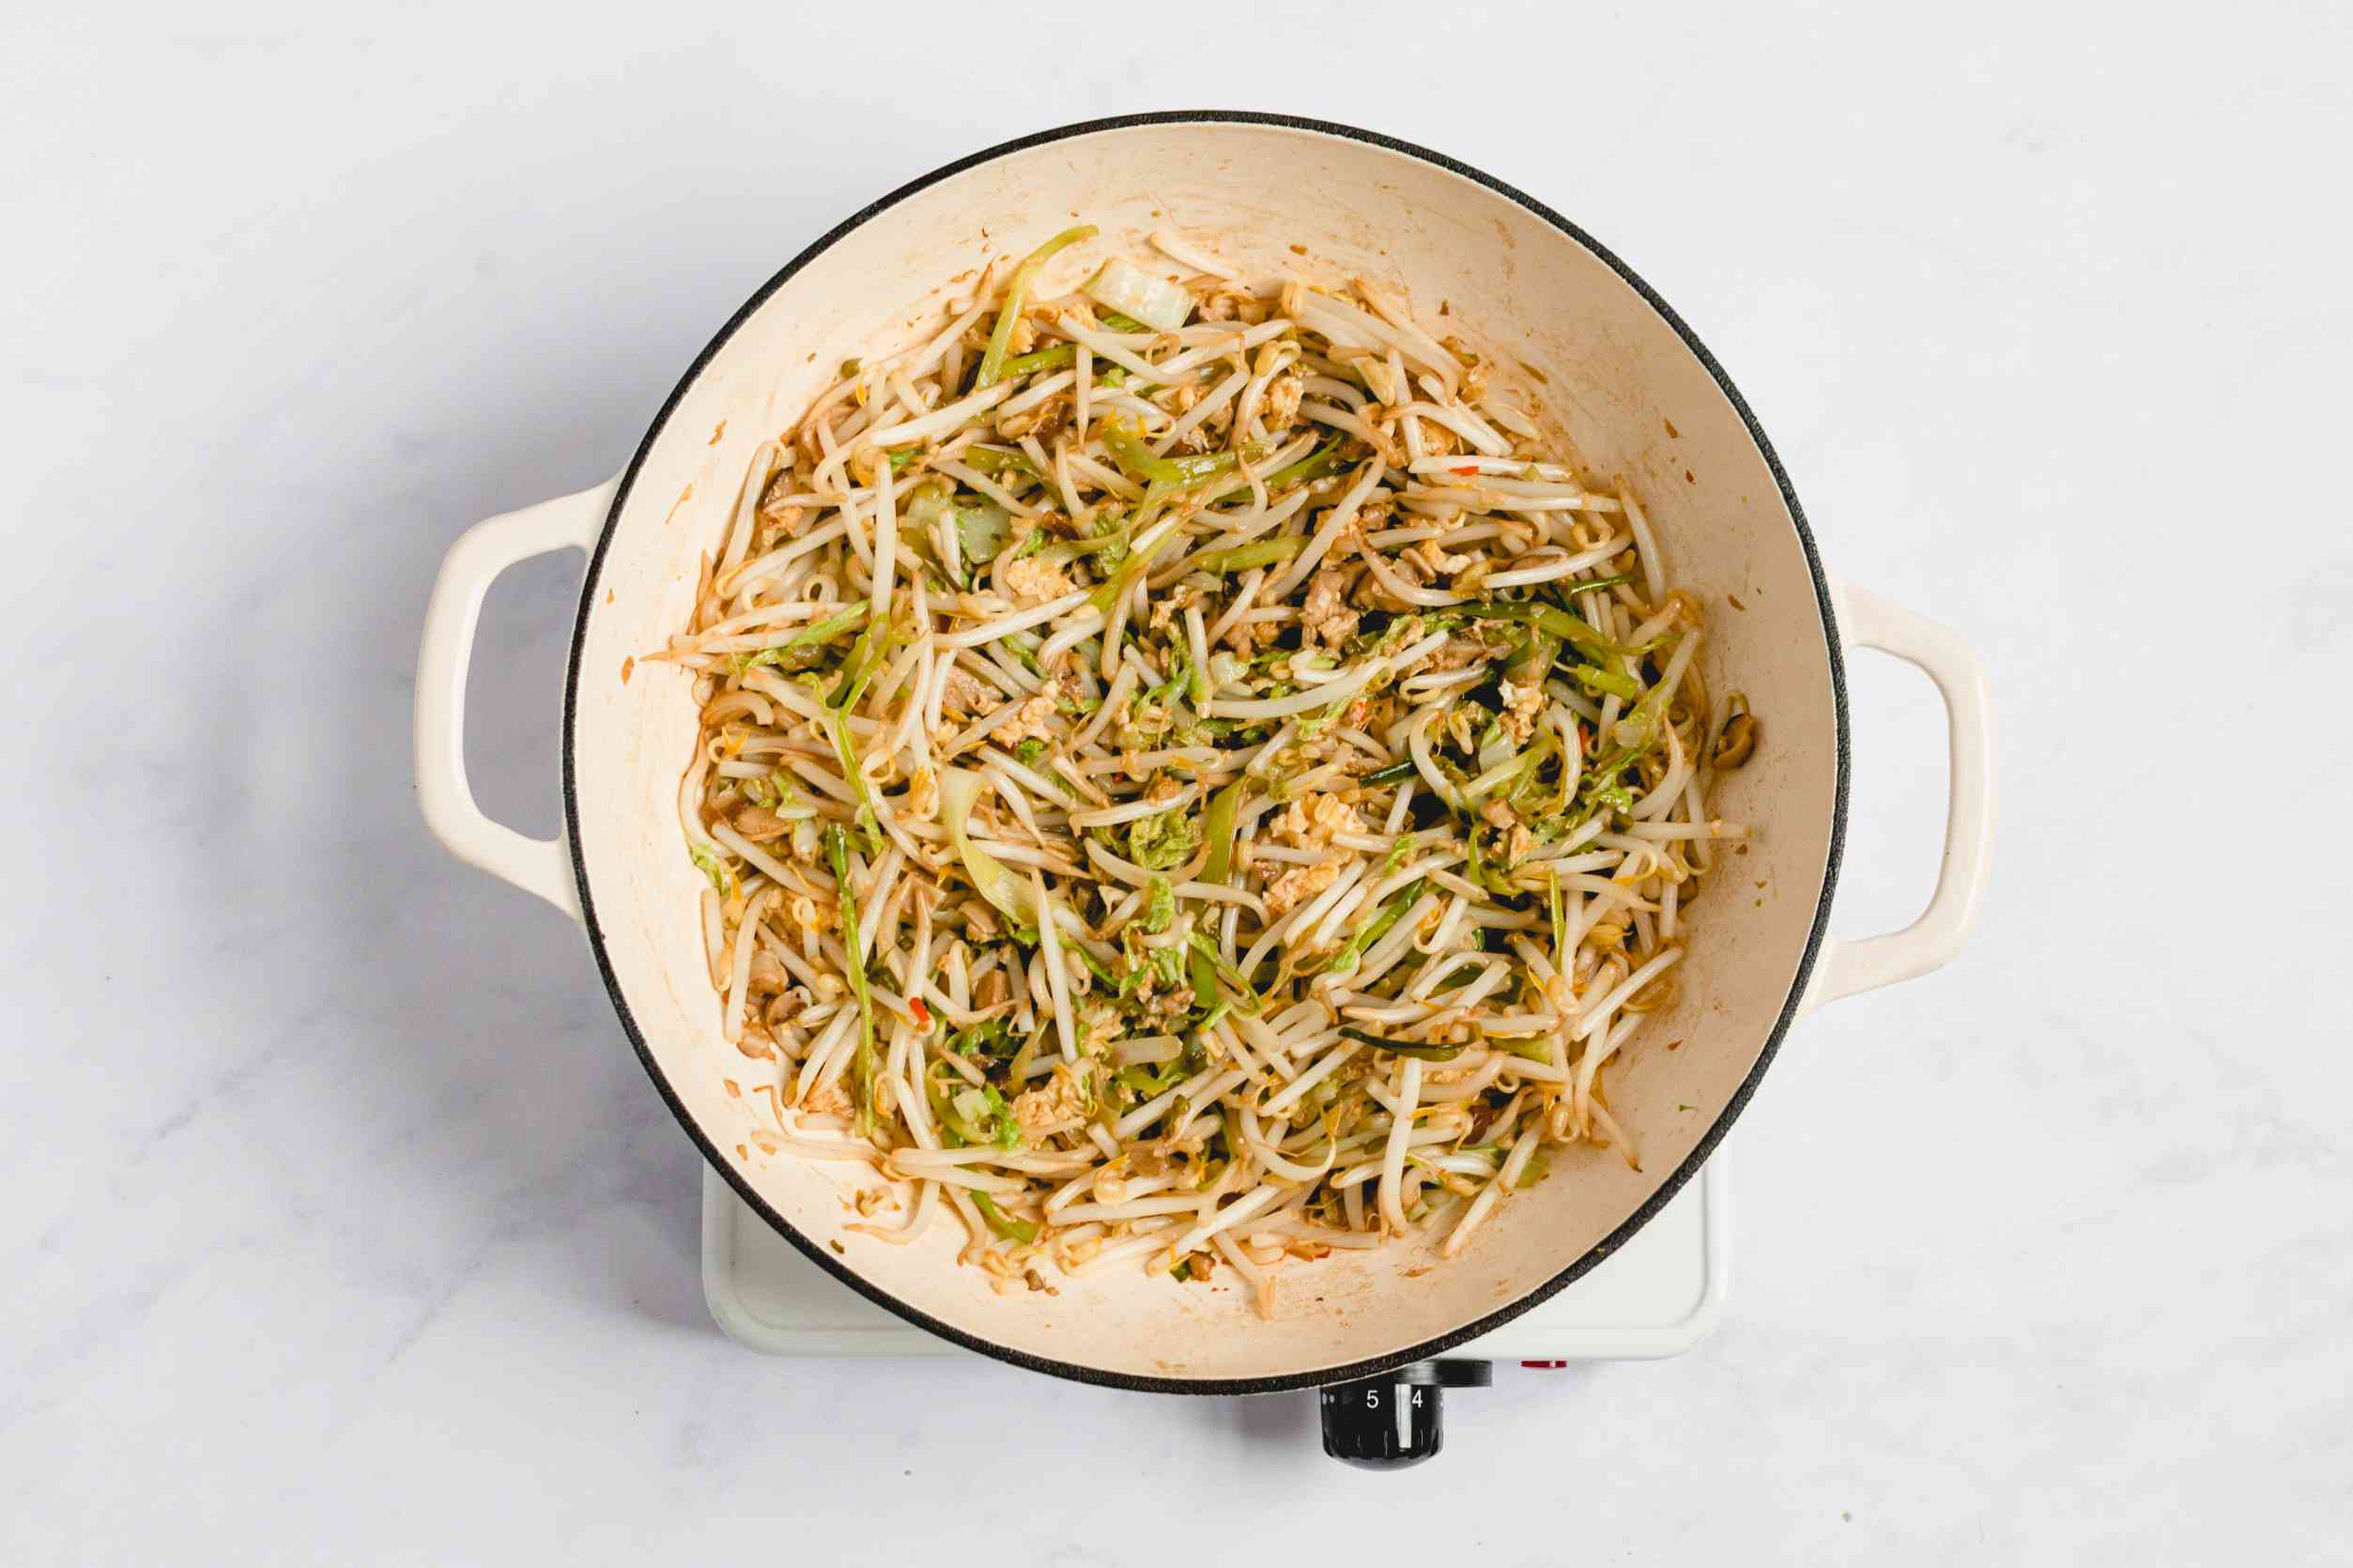 add bean sprouts to the vegetables in the pan